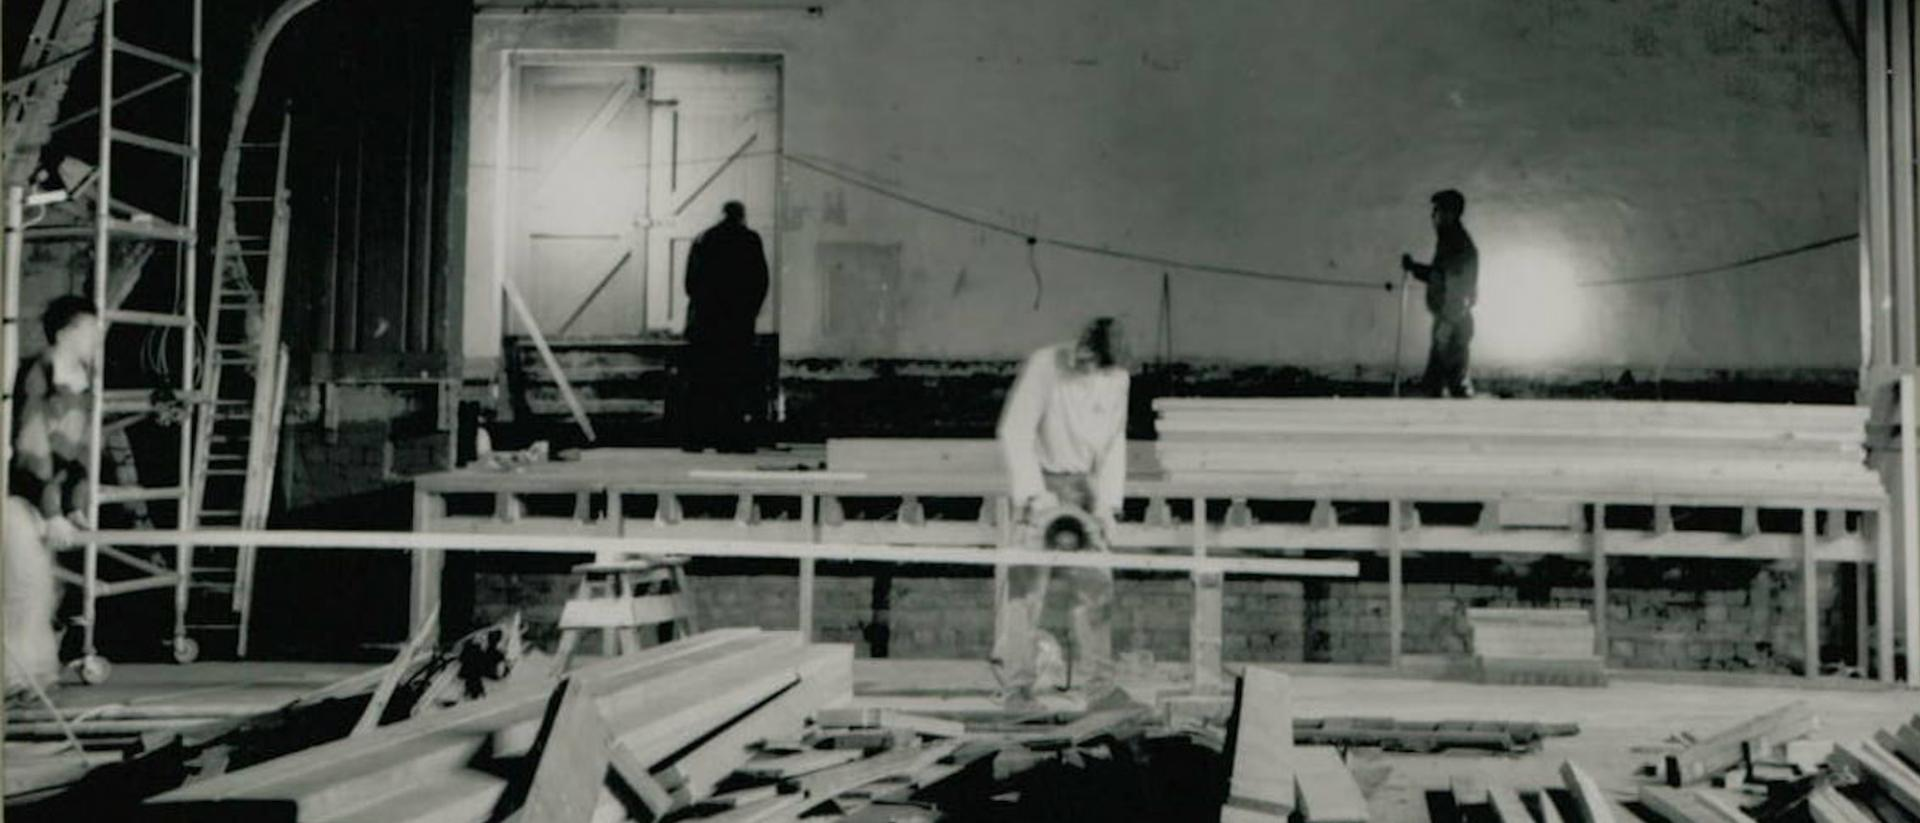 A black and white image of building works being carried out in the auditorium